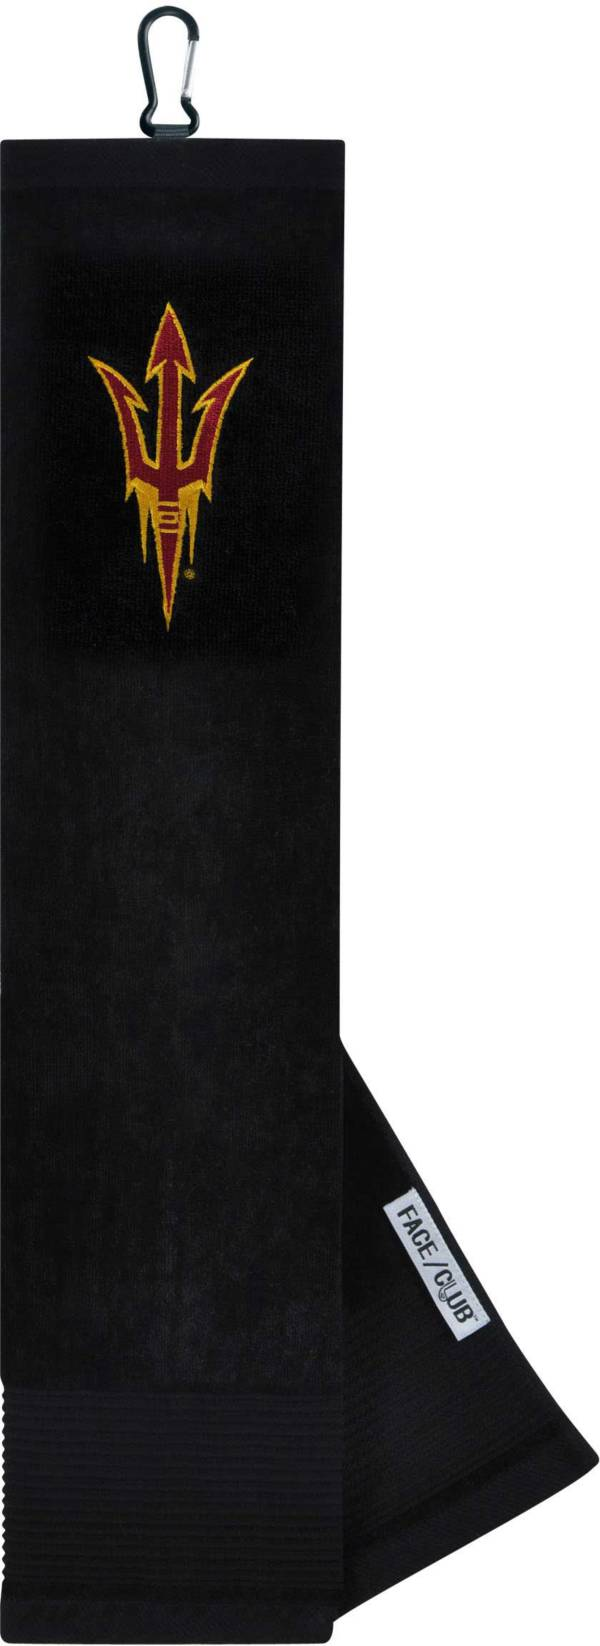 Team Effort Arizona State Sun Devils Embroidered Face/Club Tri-Fold Towel product image